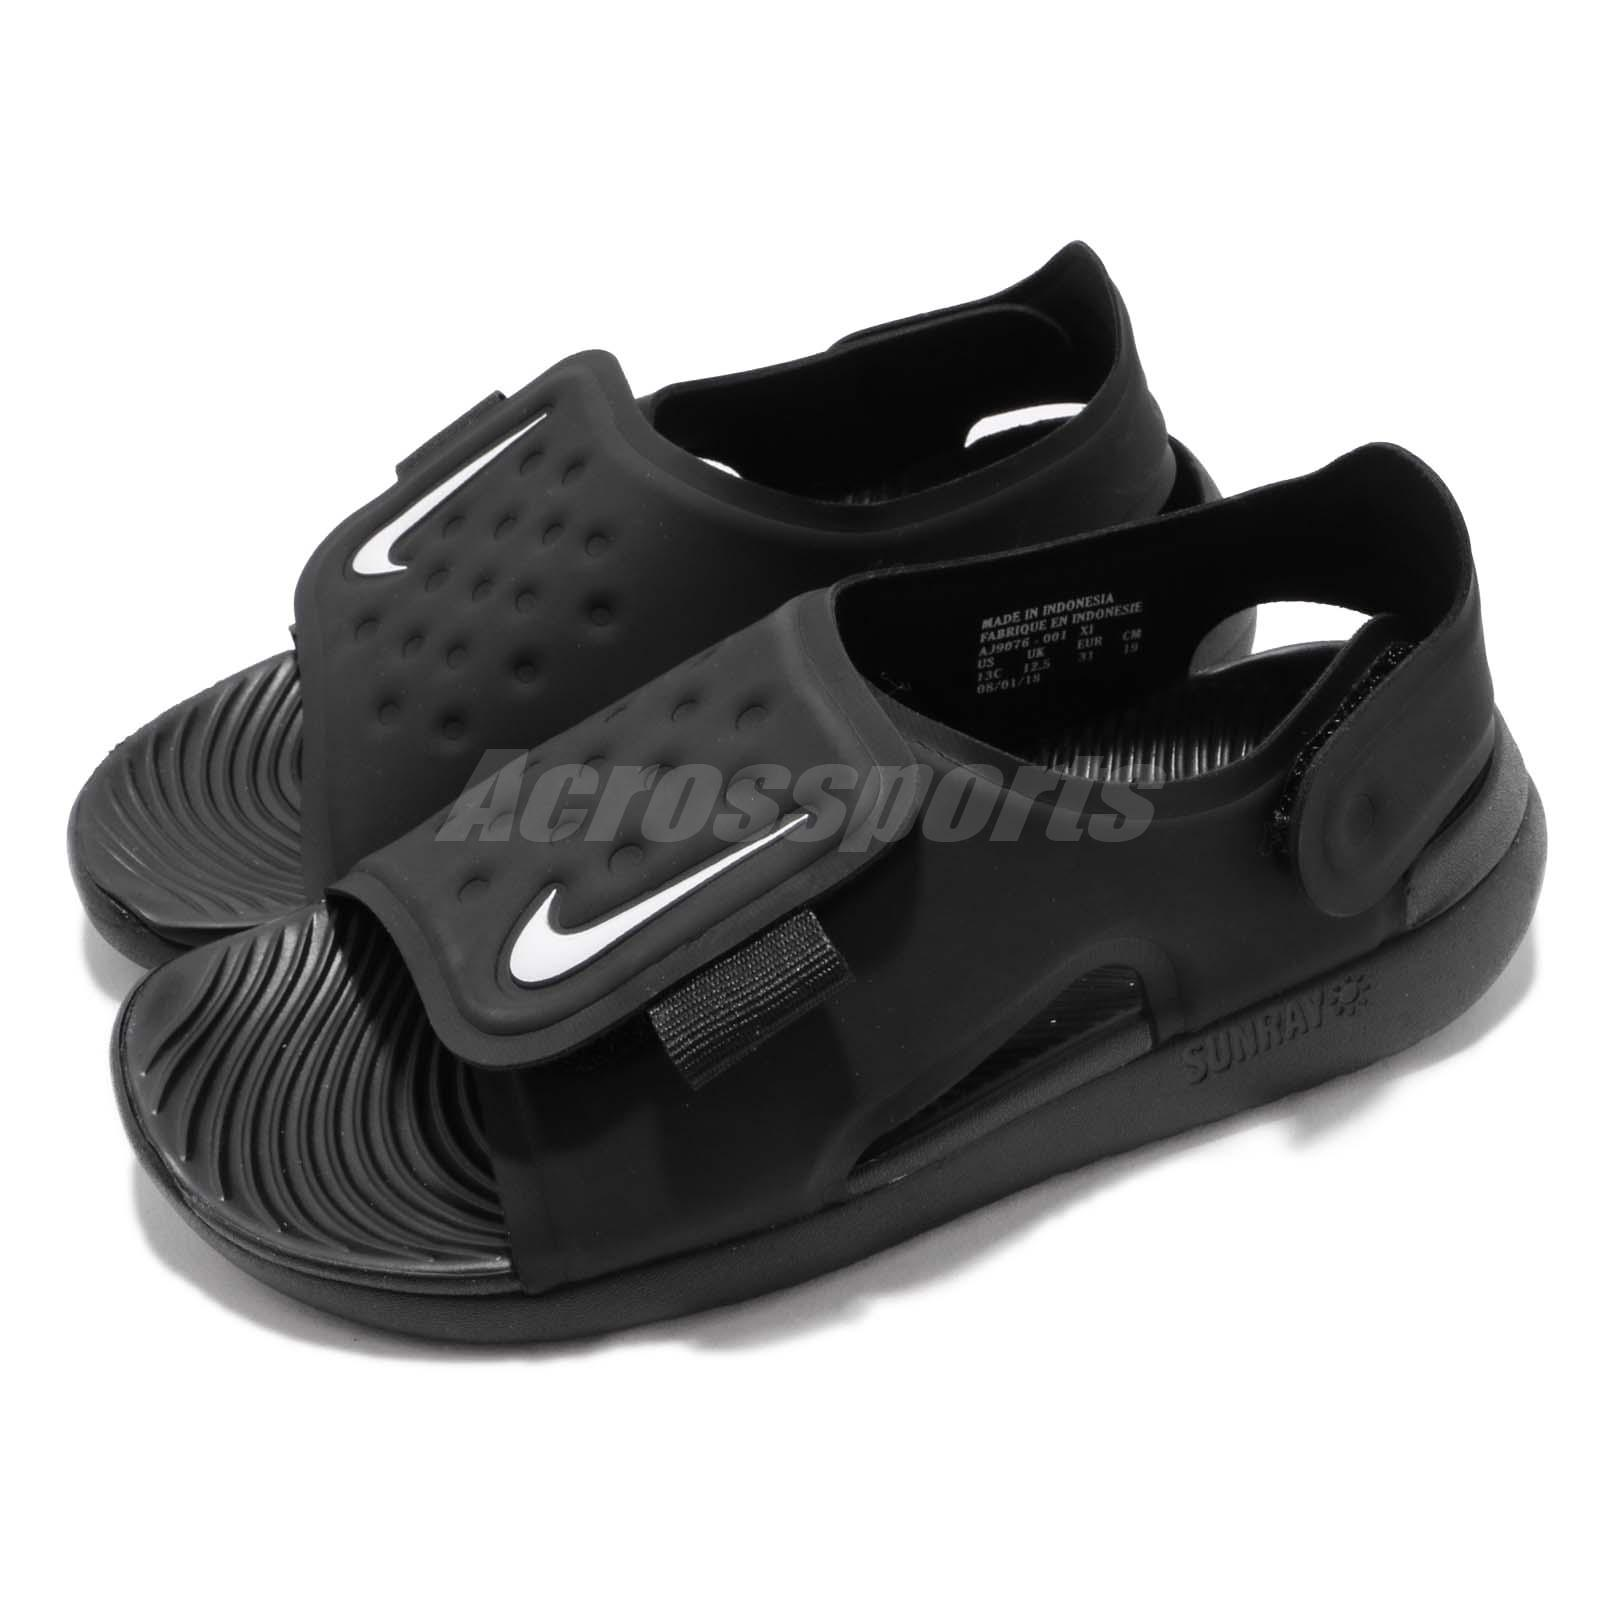 fe6593e01 Details about Nike Sunray Adjust 5 GS PS Black White Kid Preschool Sports  Sandals AJ9076-001